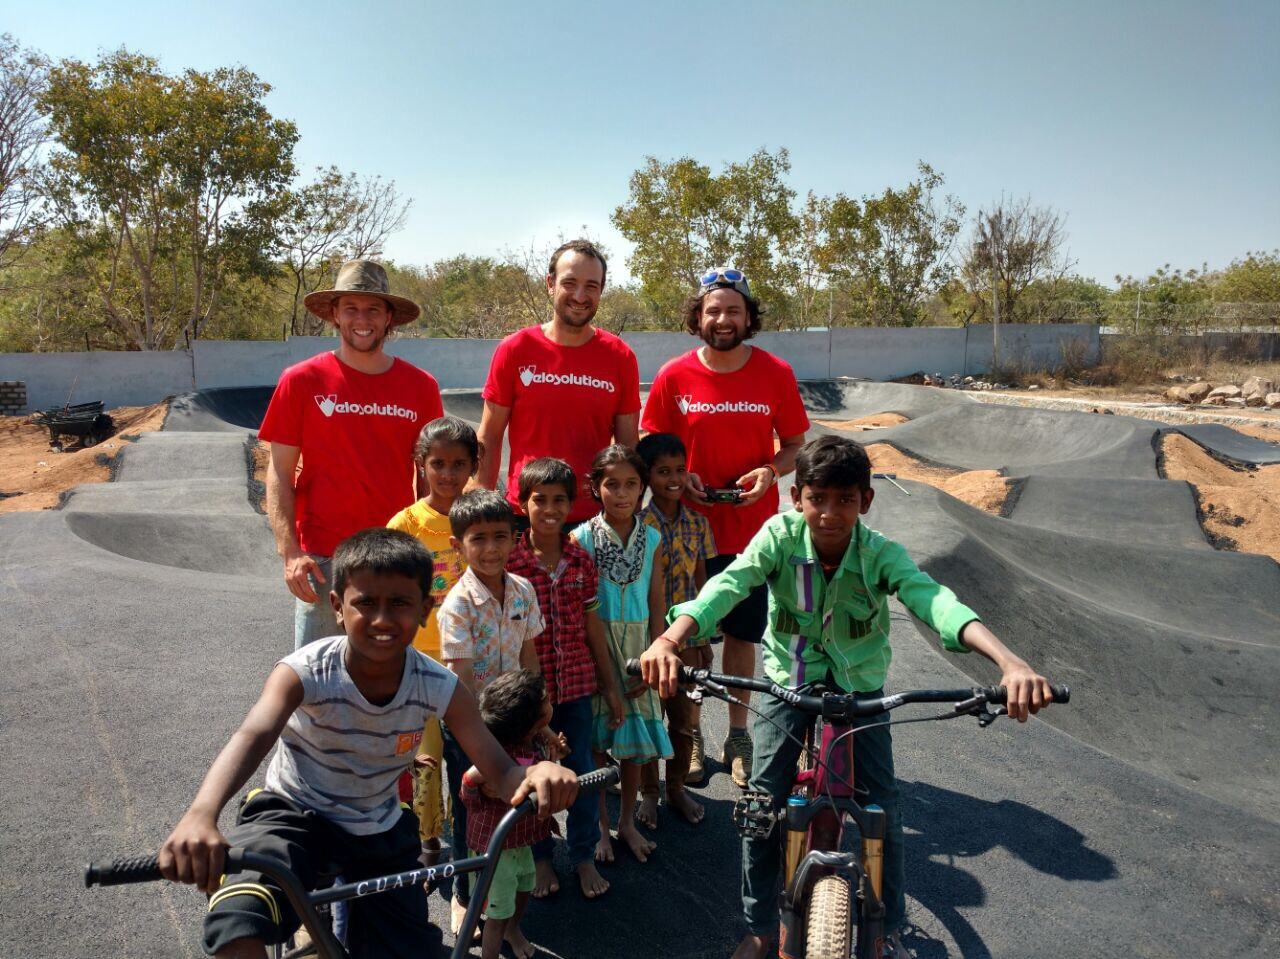 pump for peace, velosolutions